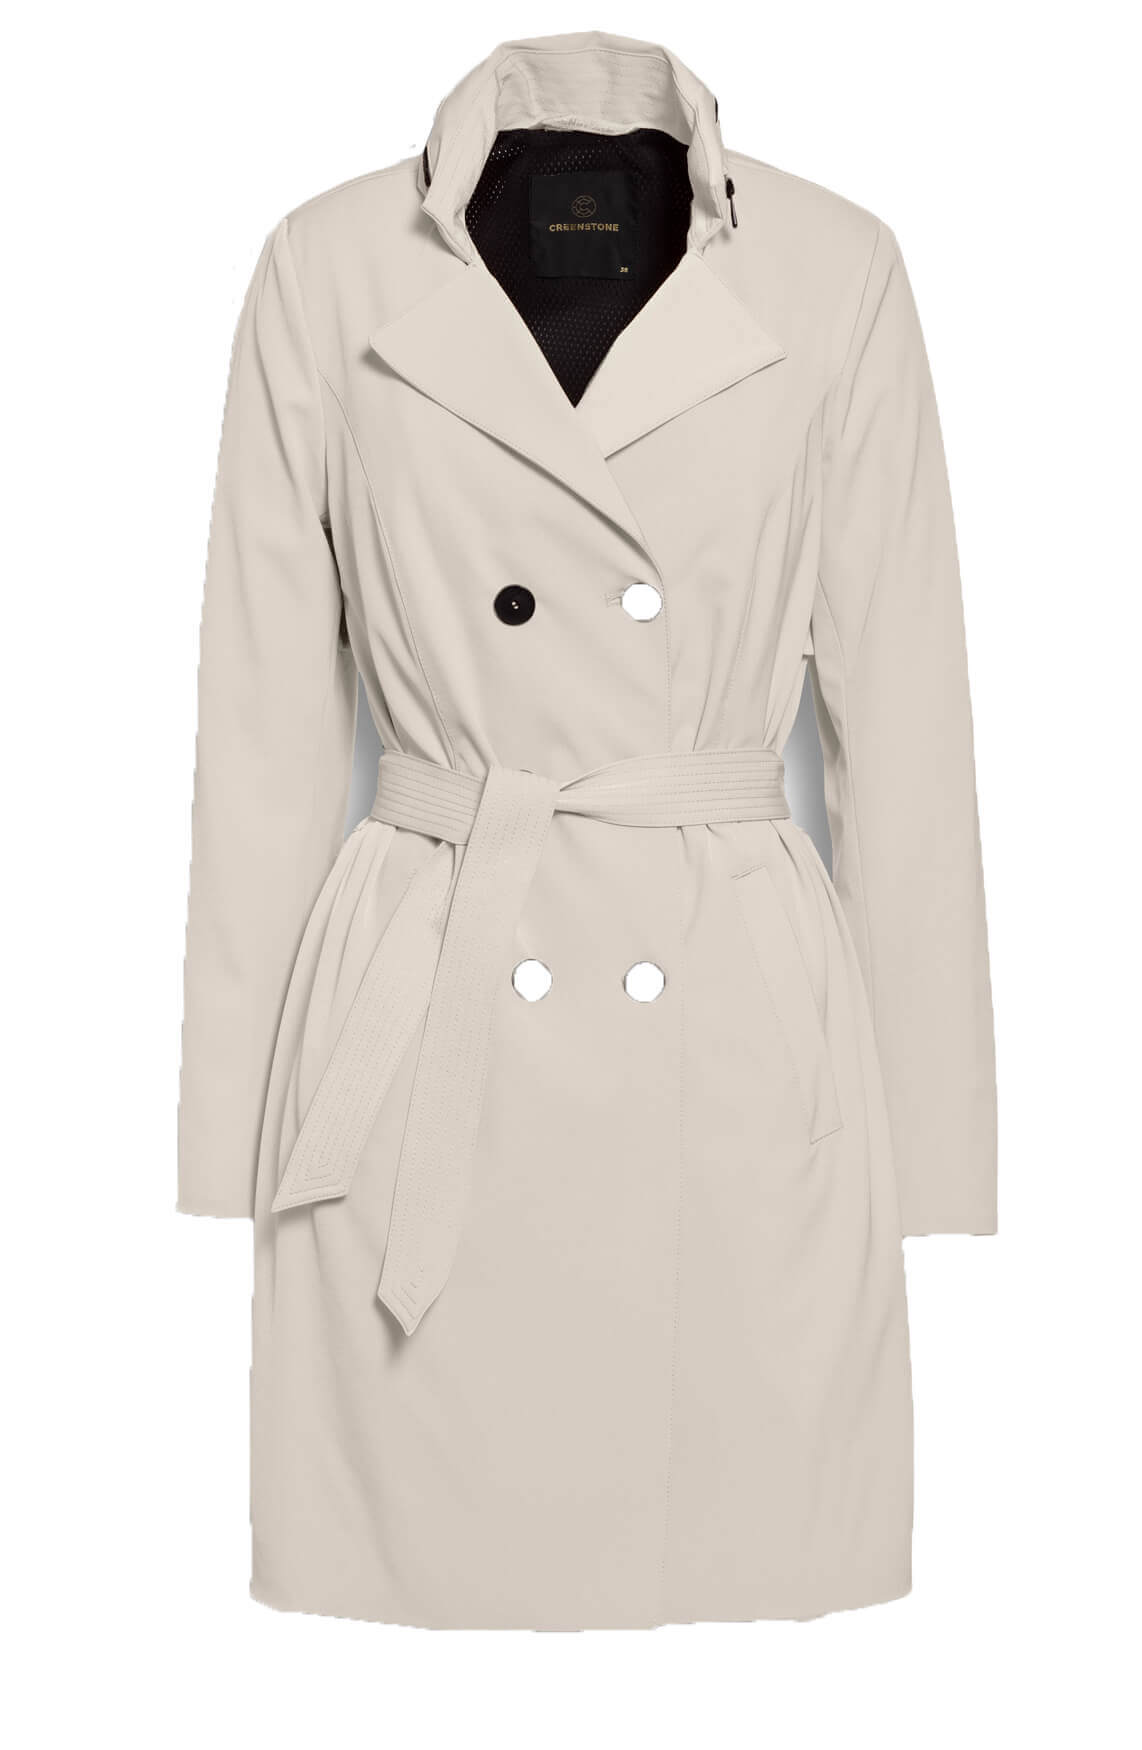 Creenstone Dames Trenchcoat Ecru